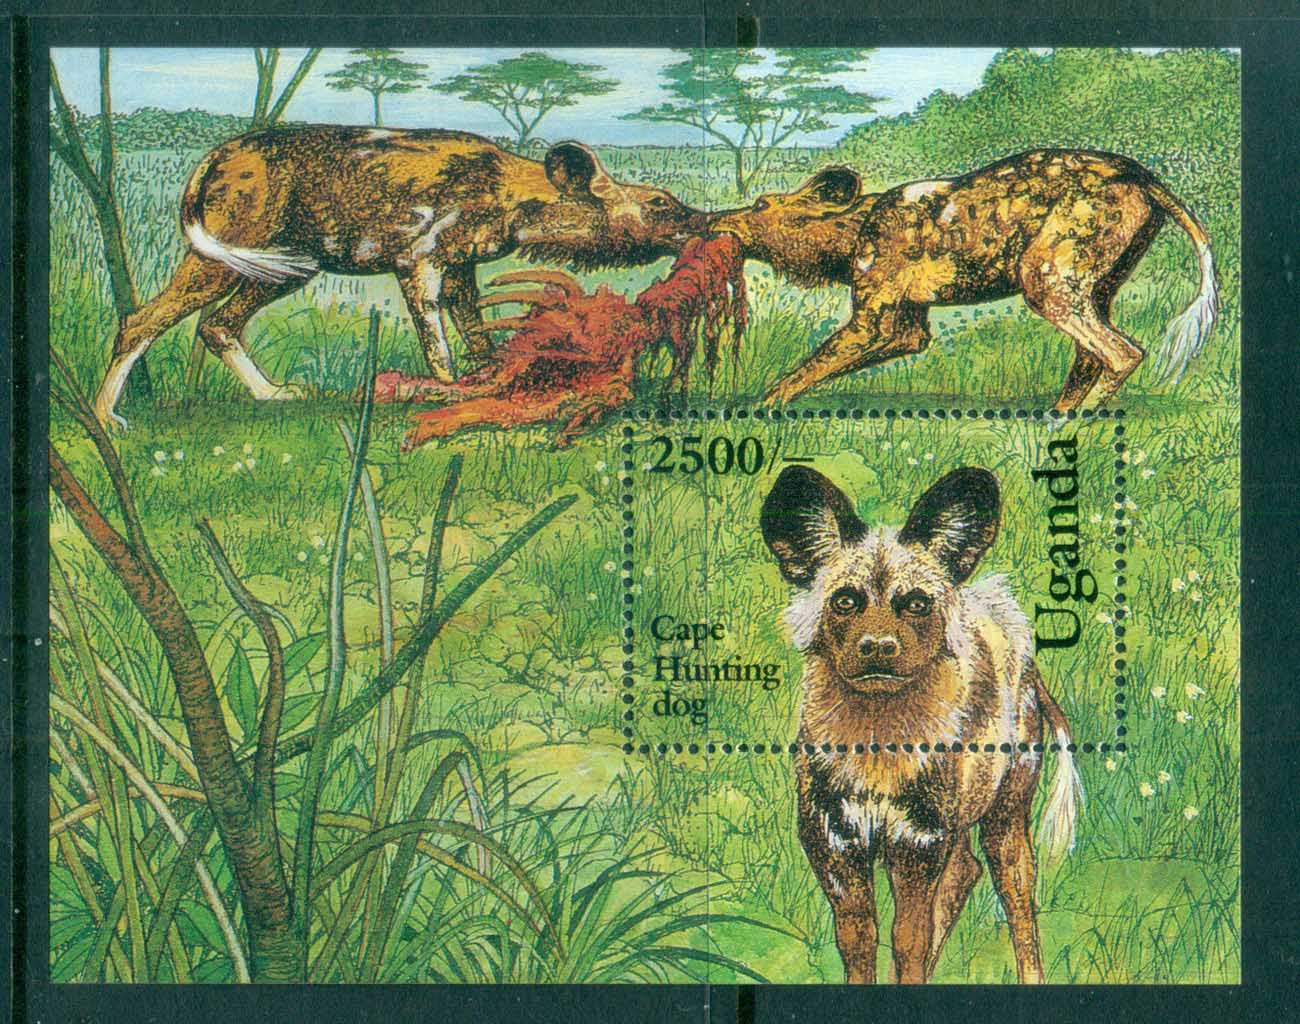 Uganda 1993 Dogs, Cape Hunting Dogs MS MUH